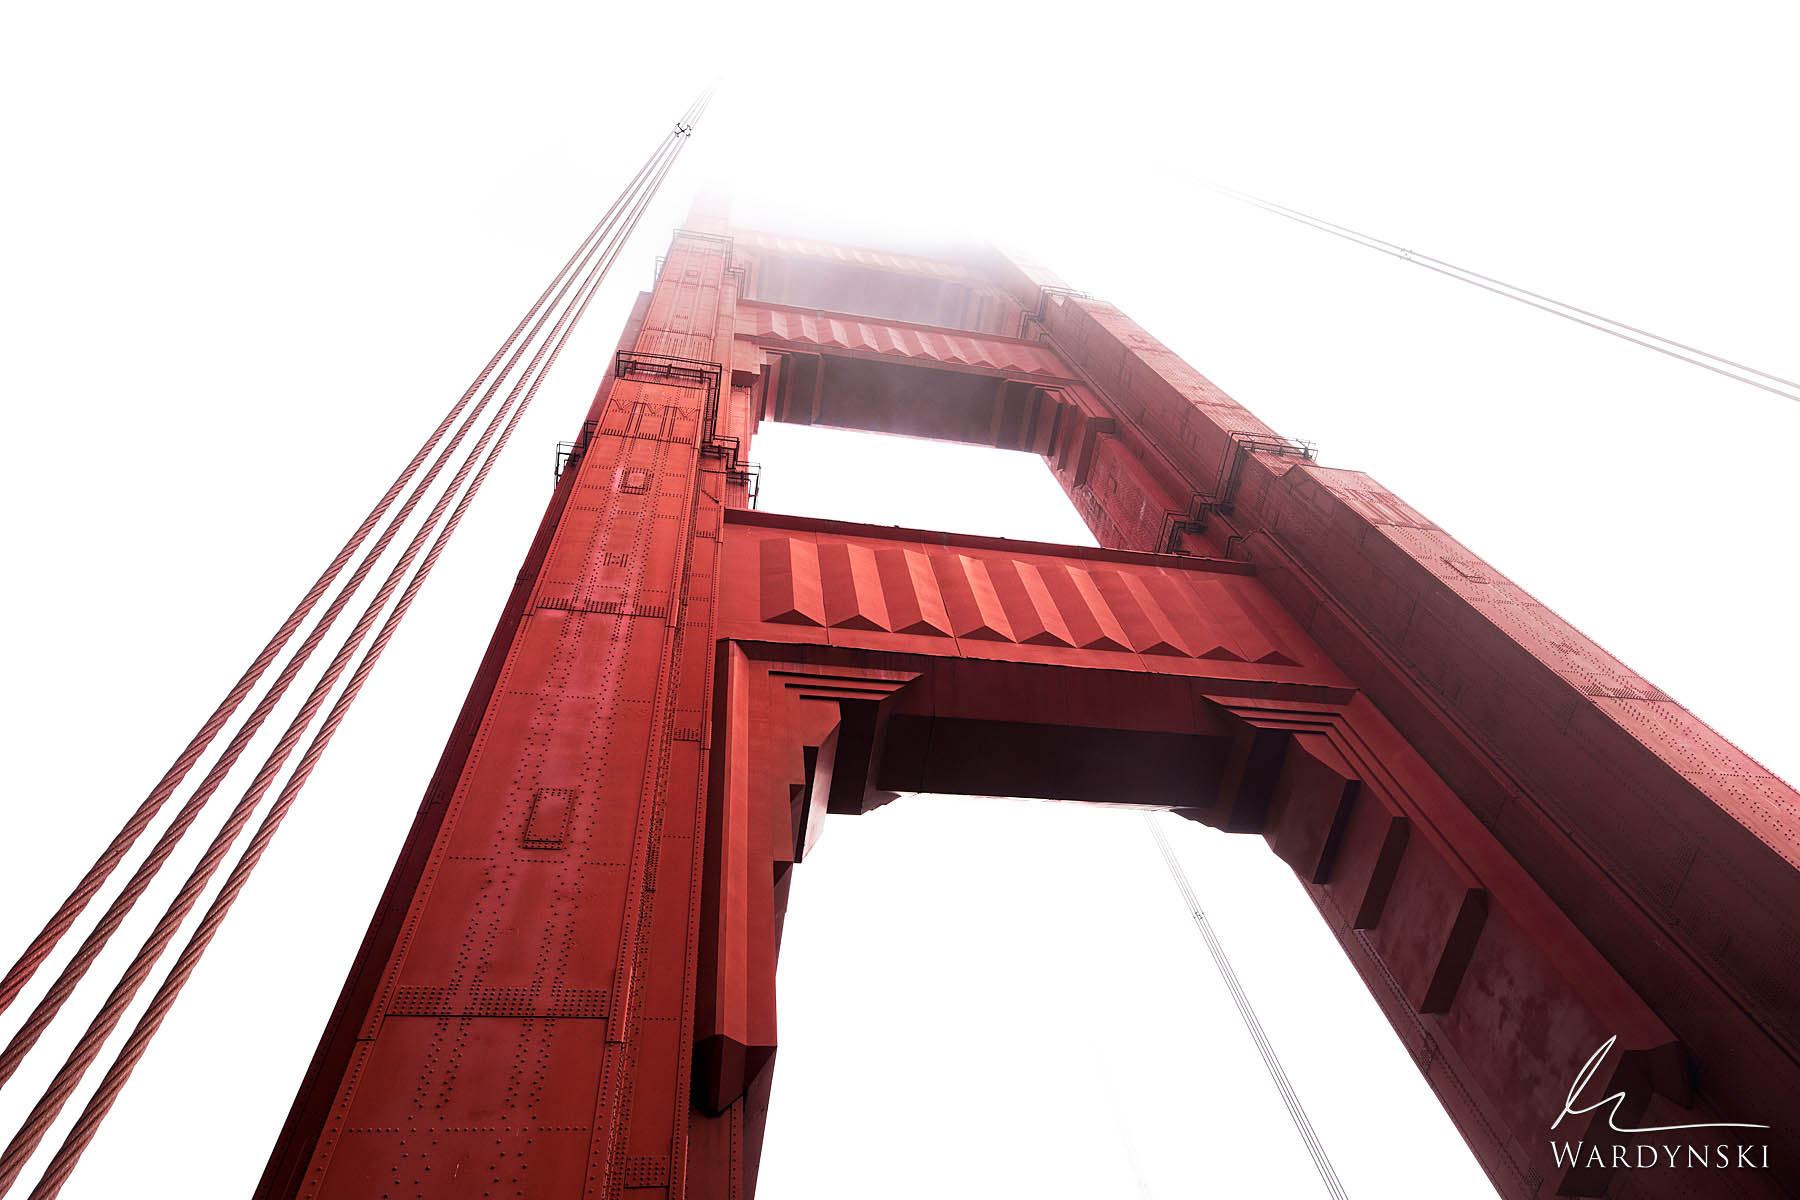 Fine Art Print | Limited Edition of 50 (Also Available In Black & White) The north tower of the Golden Gate Bridge disappears...